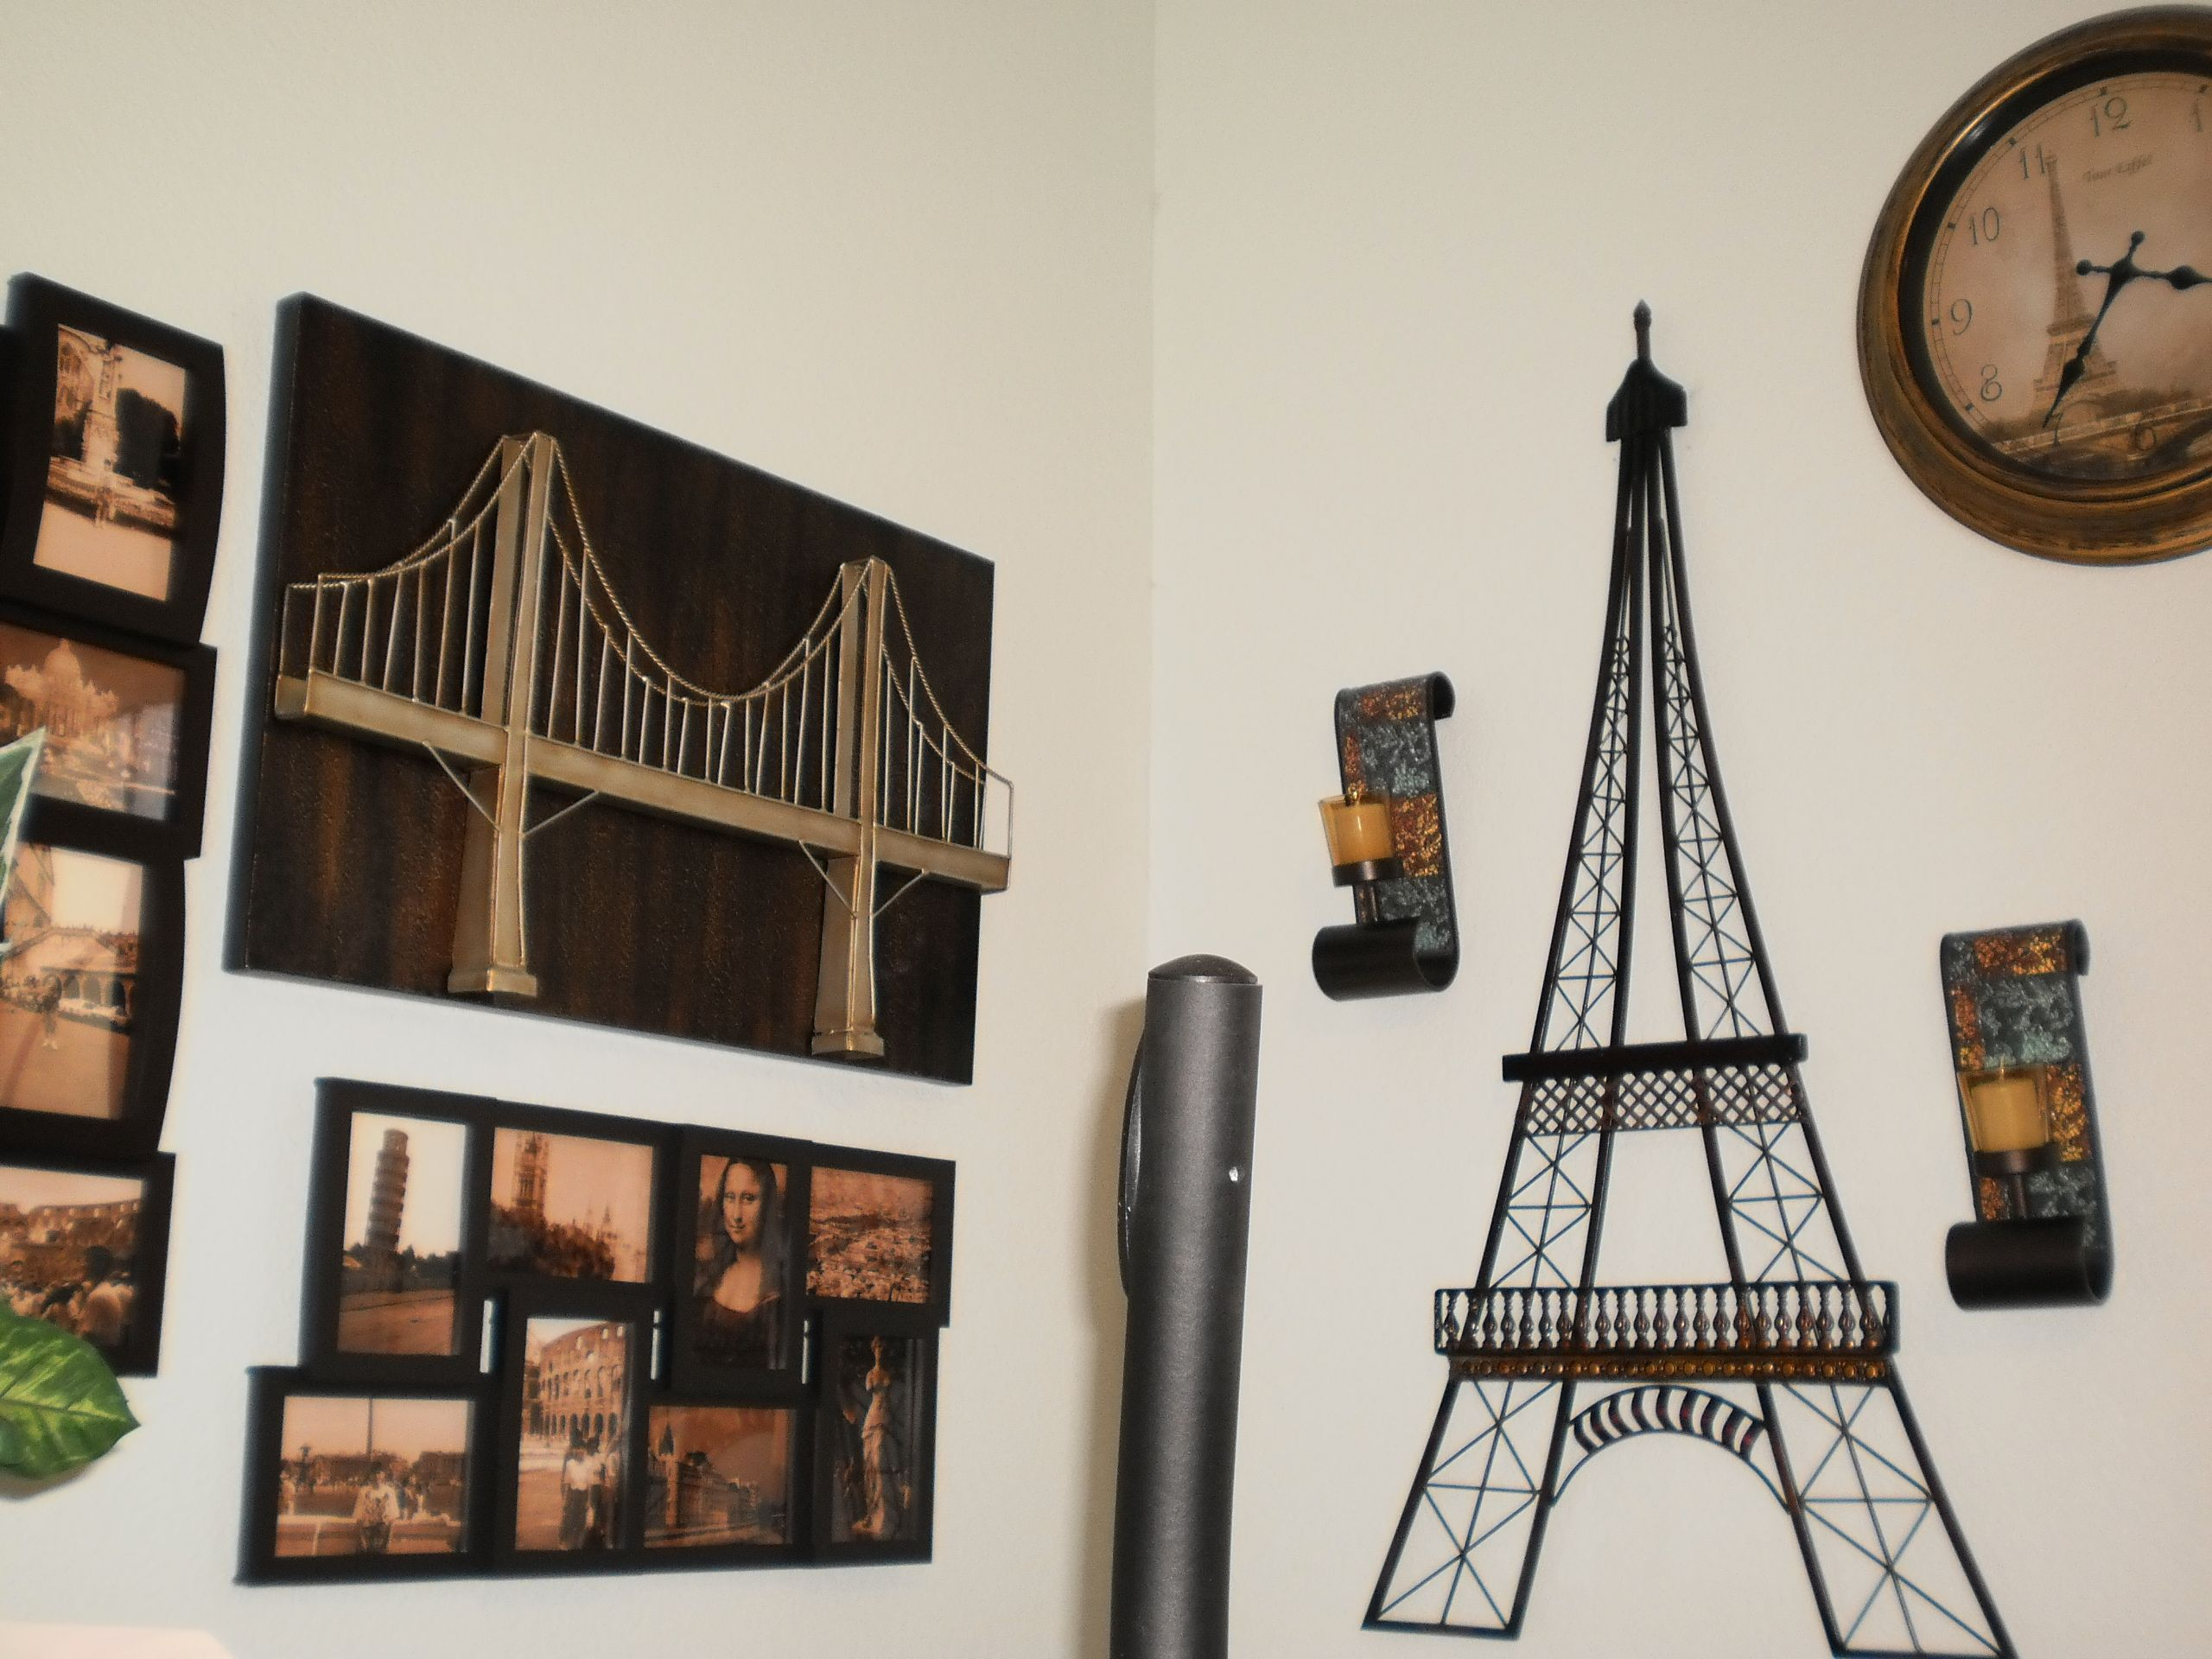 I Love The Bridge And Tower Are Brilliant Love Maybe Hallway Or Living Room Although It Is Getting Crowded Paris Living Rooms Paris Rooms Travel Decor Diy Travel living room decor